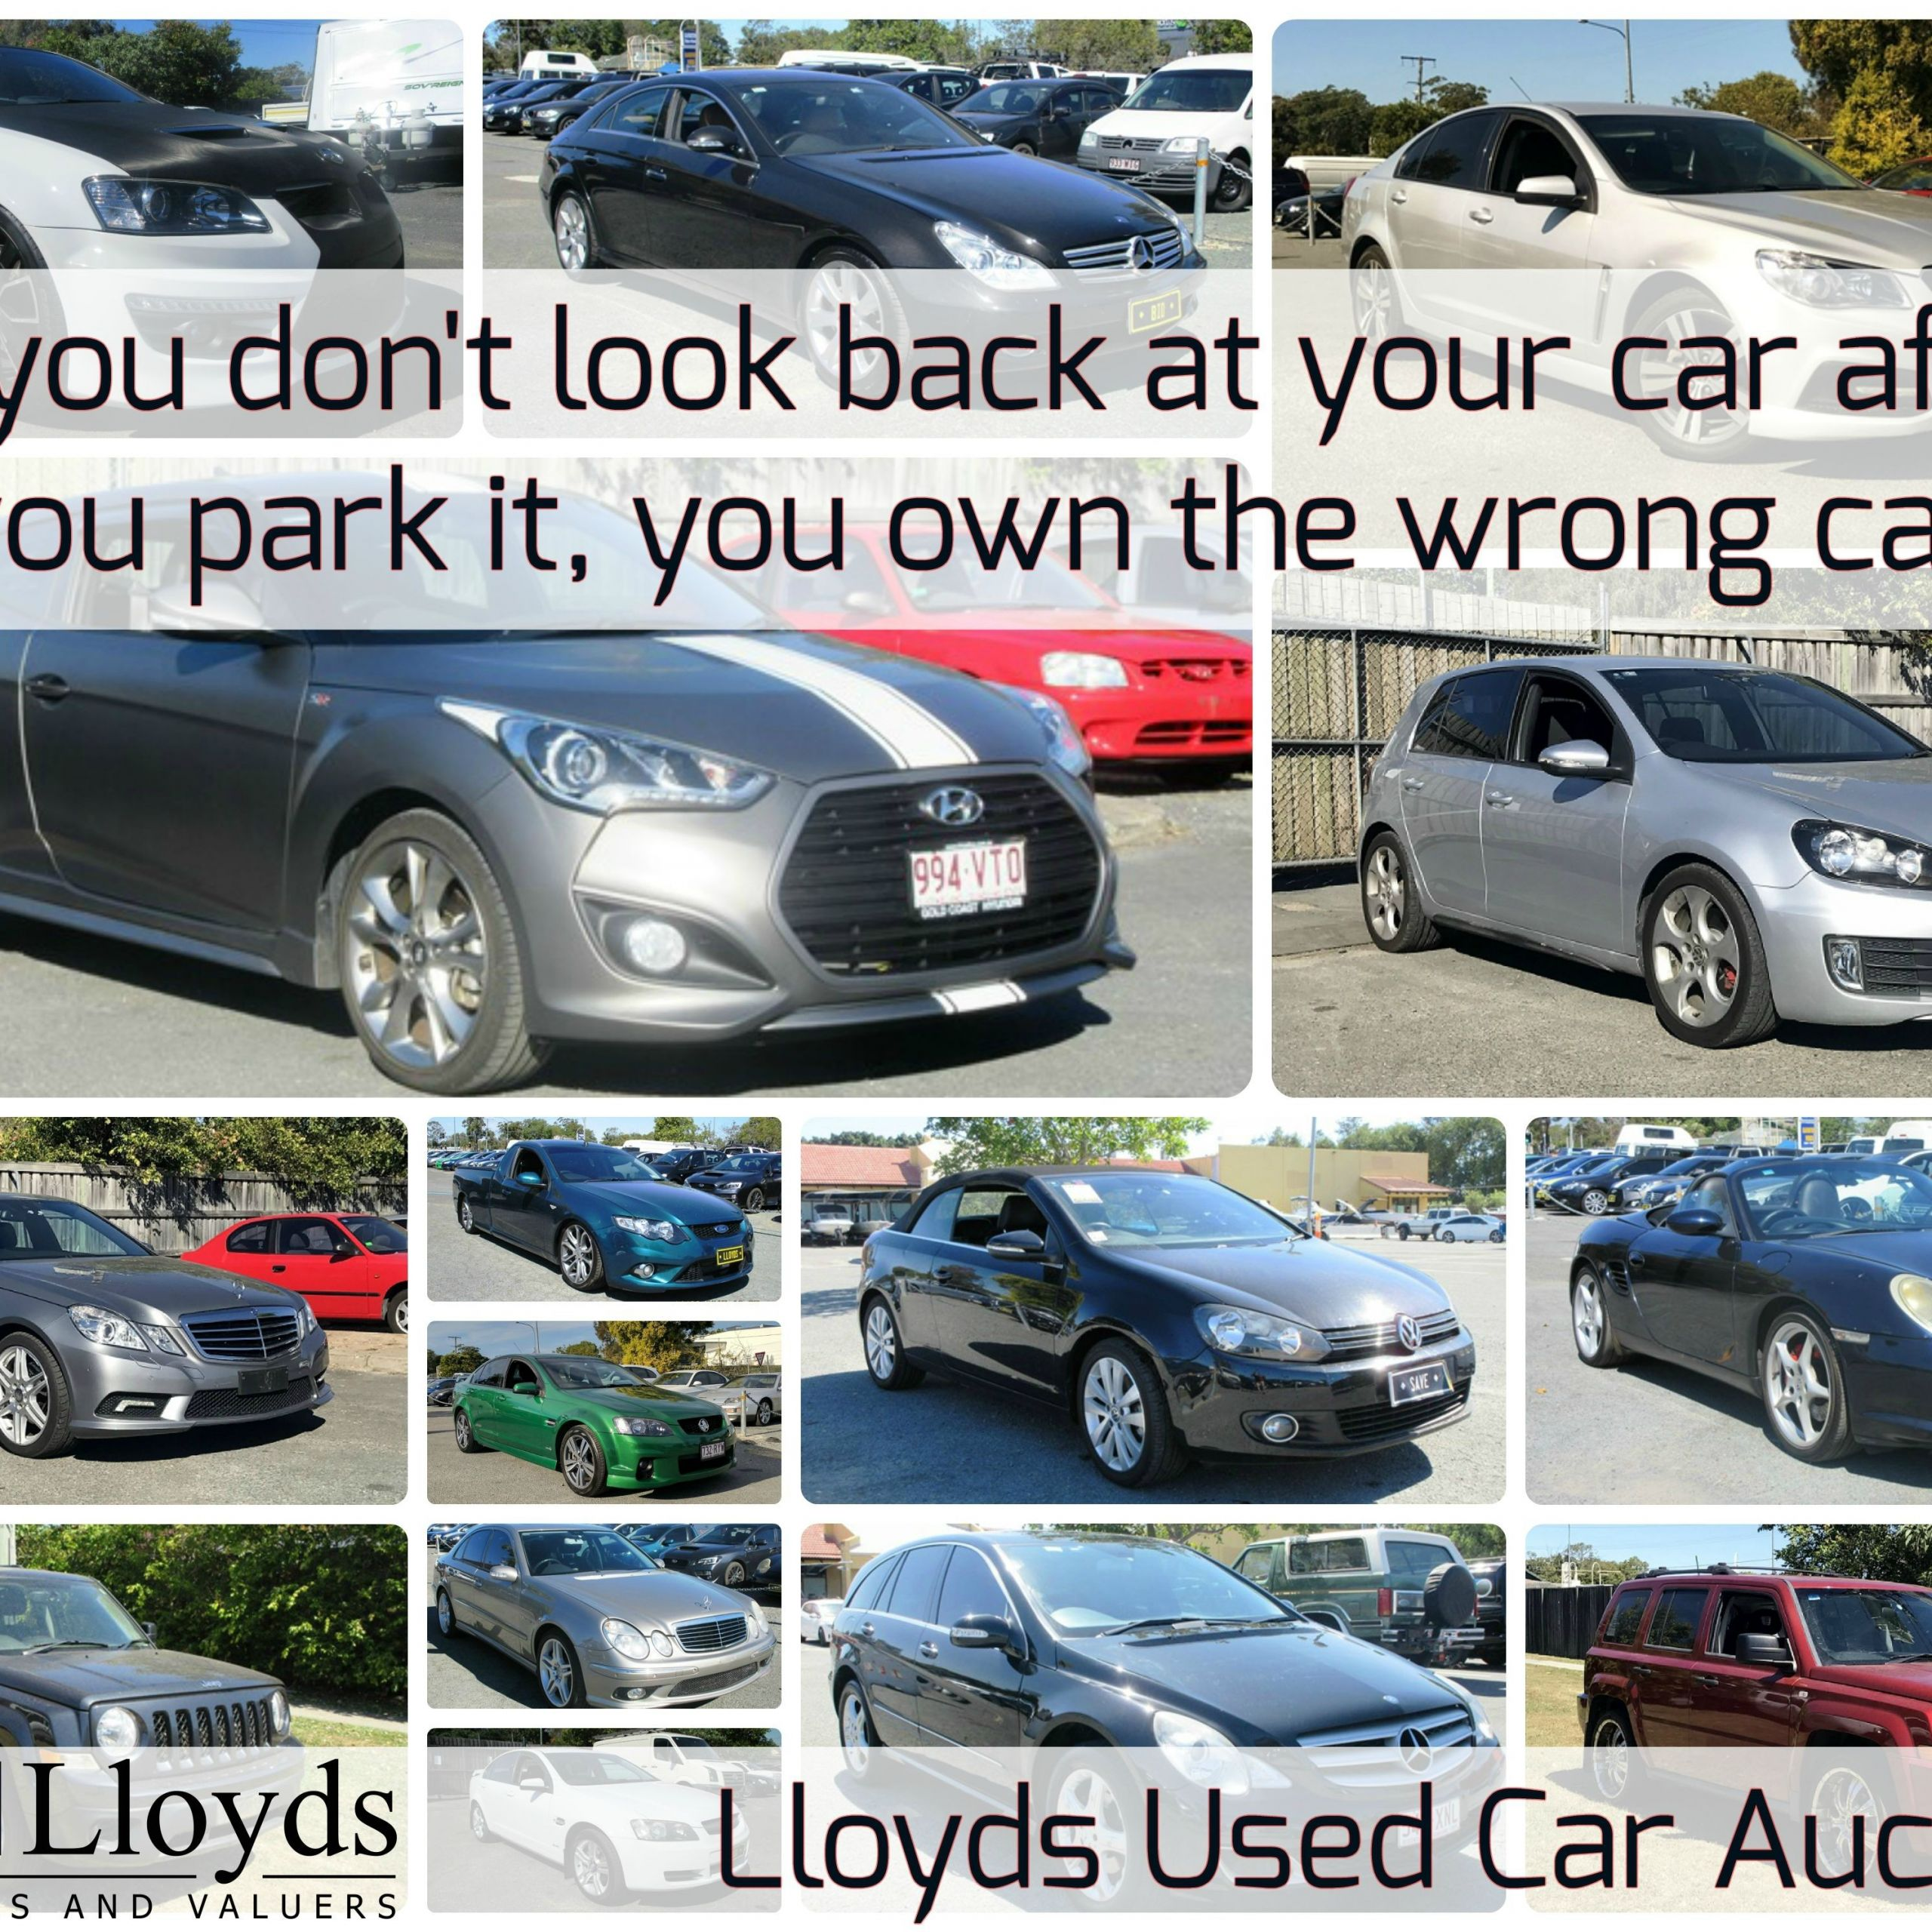 Cars for Sale Near Me In Craigslist Fresh Do You Look Back when You Ve Parked Get the Car You Want at